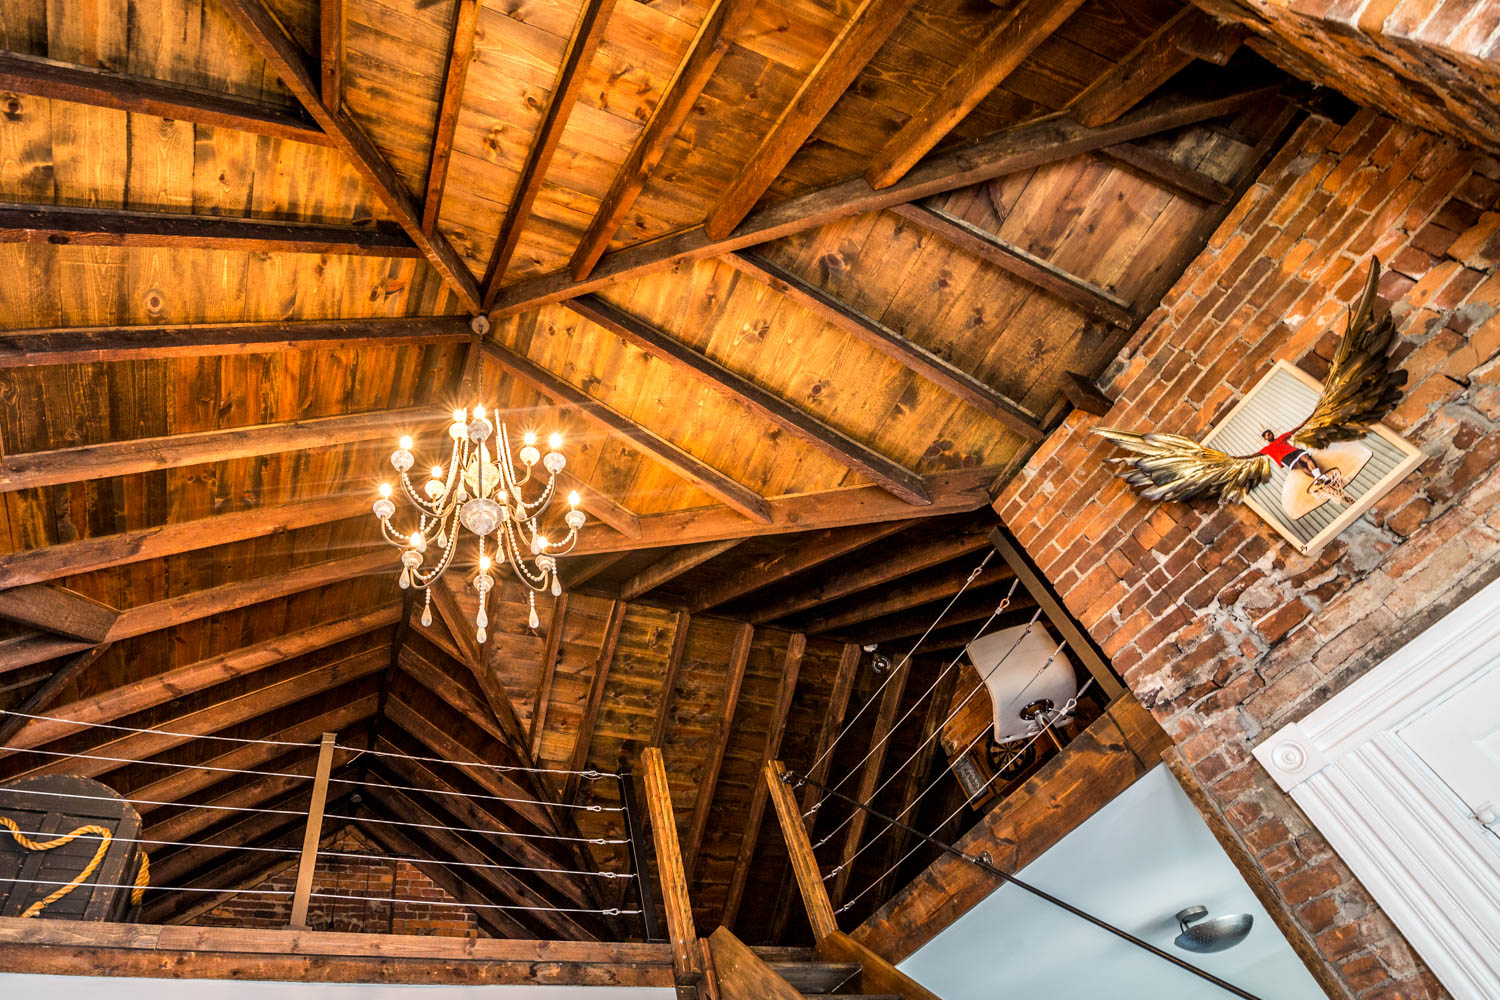 Discovering the loft was a very memorable moment of the rehab for the Lehmans. When they bought the house, the space was covered with a drop ceiling, so they had no clue all of the additional square footage was up there. / Image: Catherine Viox // Published: 10.13.19